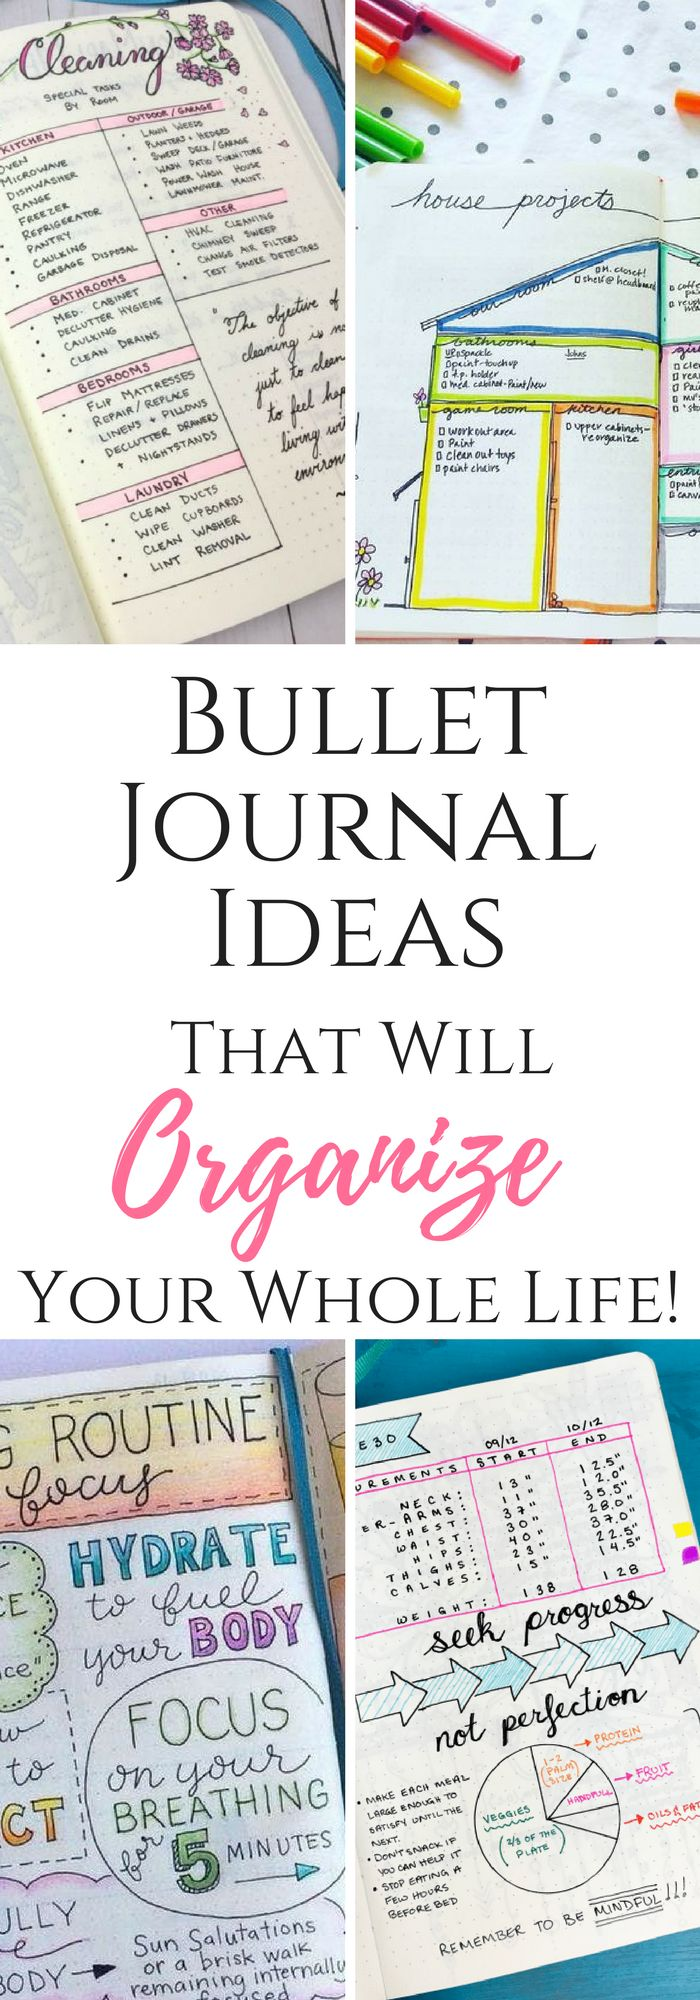 Bullet Journal Ideas to organize your entire life #organization #journaling #art